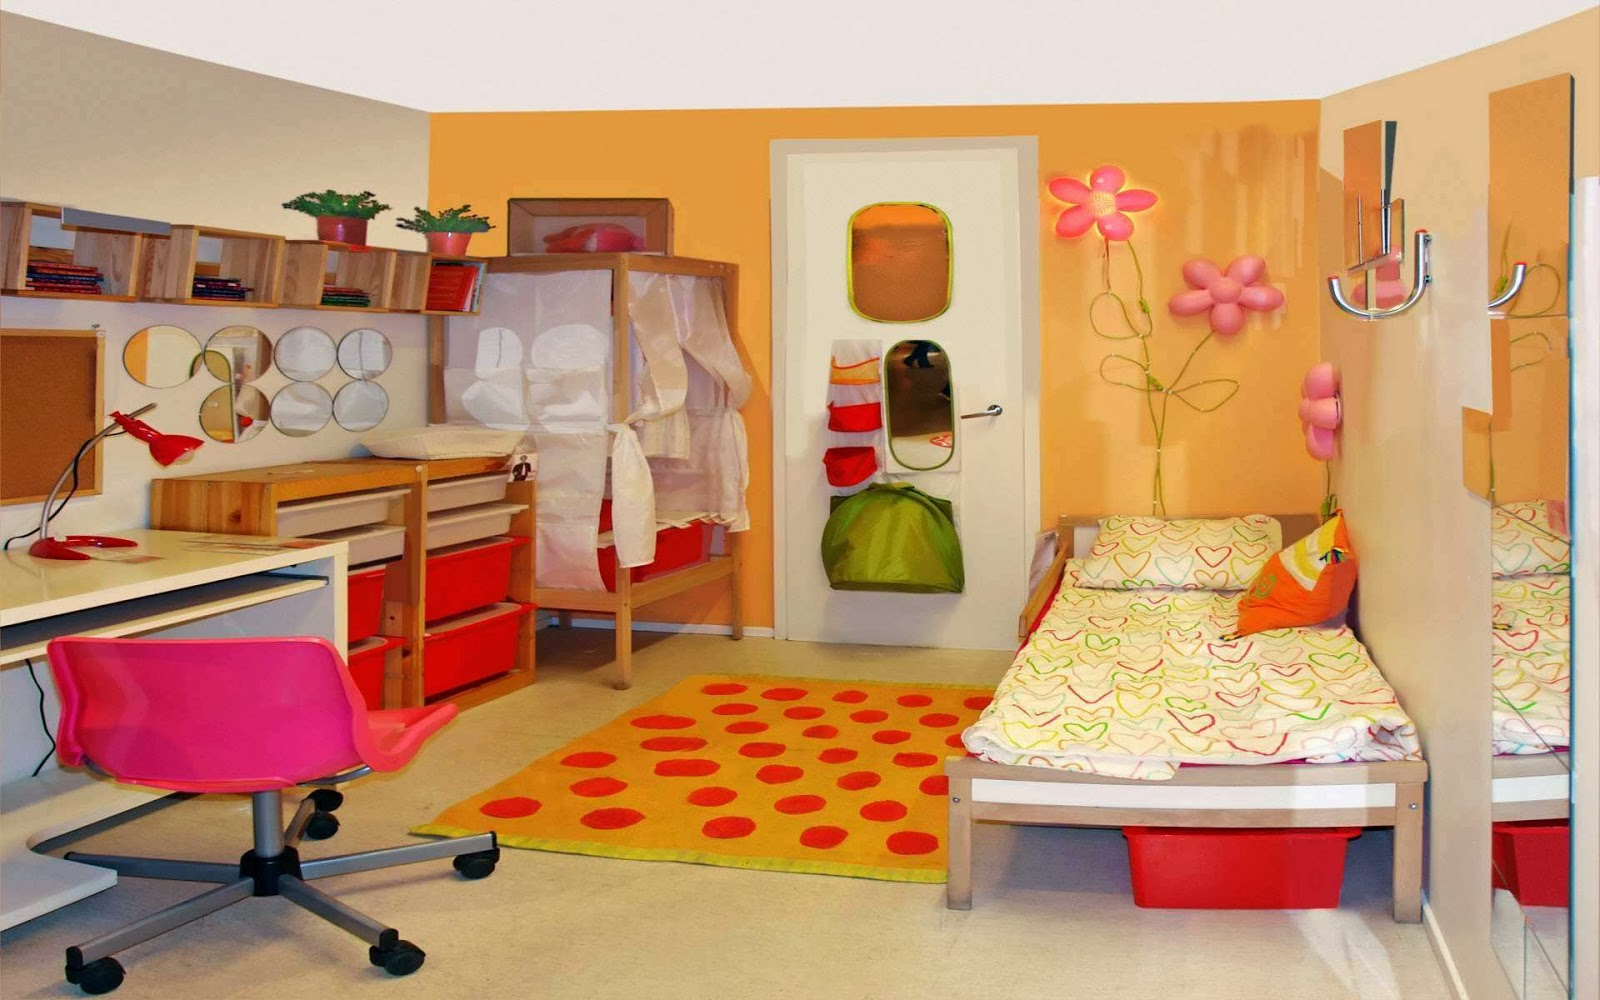 Home Decorating Interior Design Ideas: Fun Kids Room Decorating ...